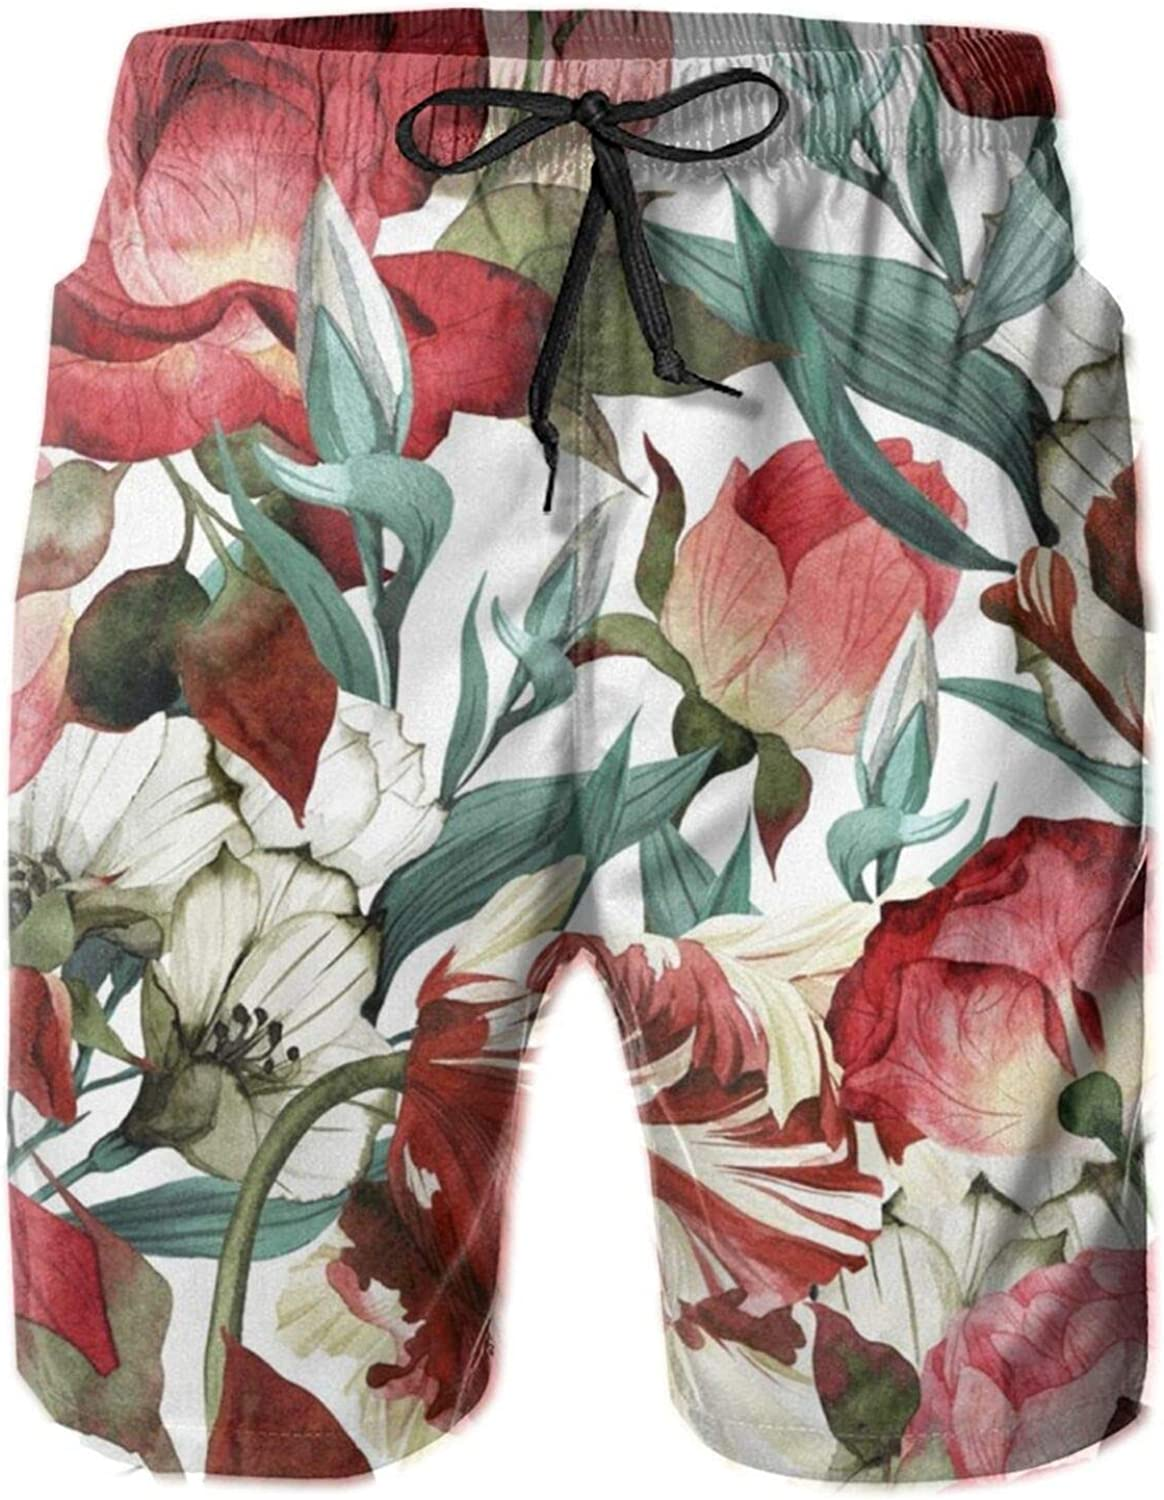 Yt92Pl@00 Men's 100% Polyester Flower Casual Bathin Swim Super sale period limited Trunks Omaha Mall